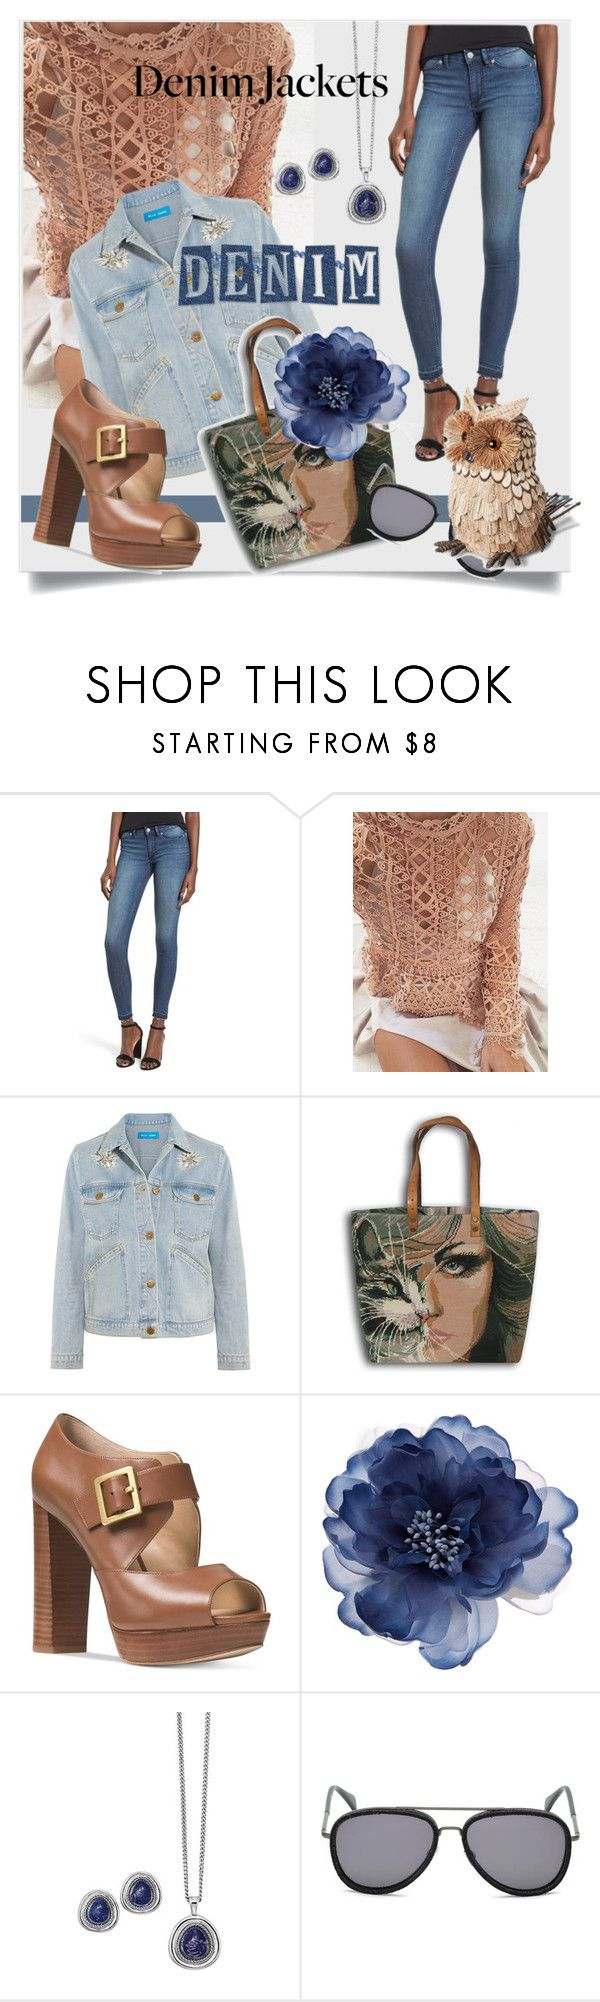 """""""Denim Trend: Jean Jackets"""" by kari-c ❤ liked on Polyvore featuring Cheap Monday, M.i.h Jeans, Sephora Collection, Michael Kors, Accessorize, Avon, Diesel, Smith & Hawken and jeanjackets"""